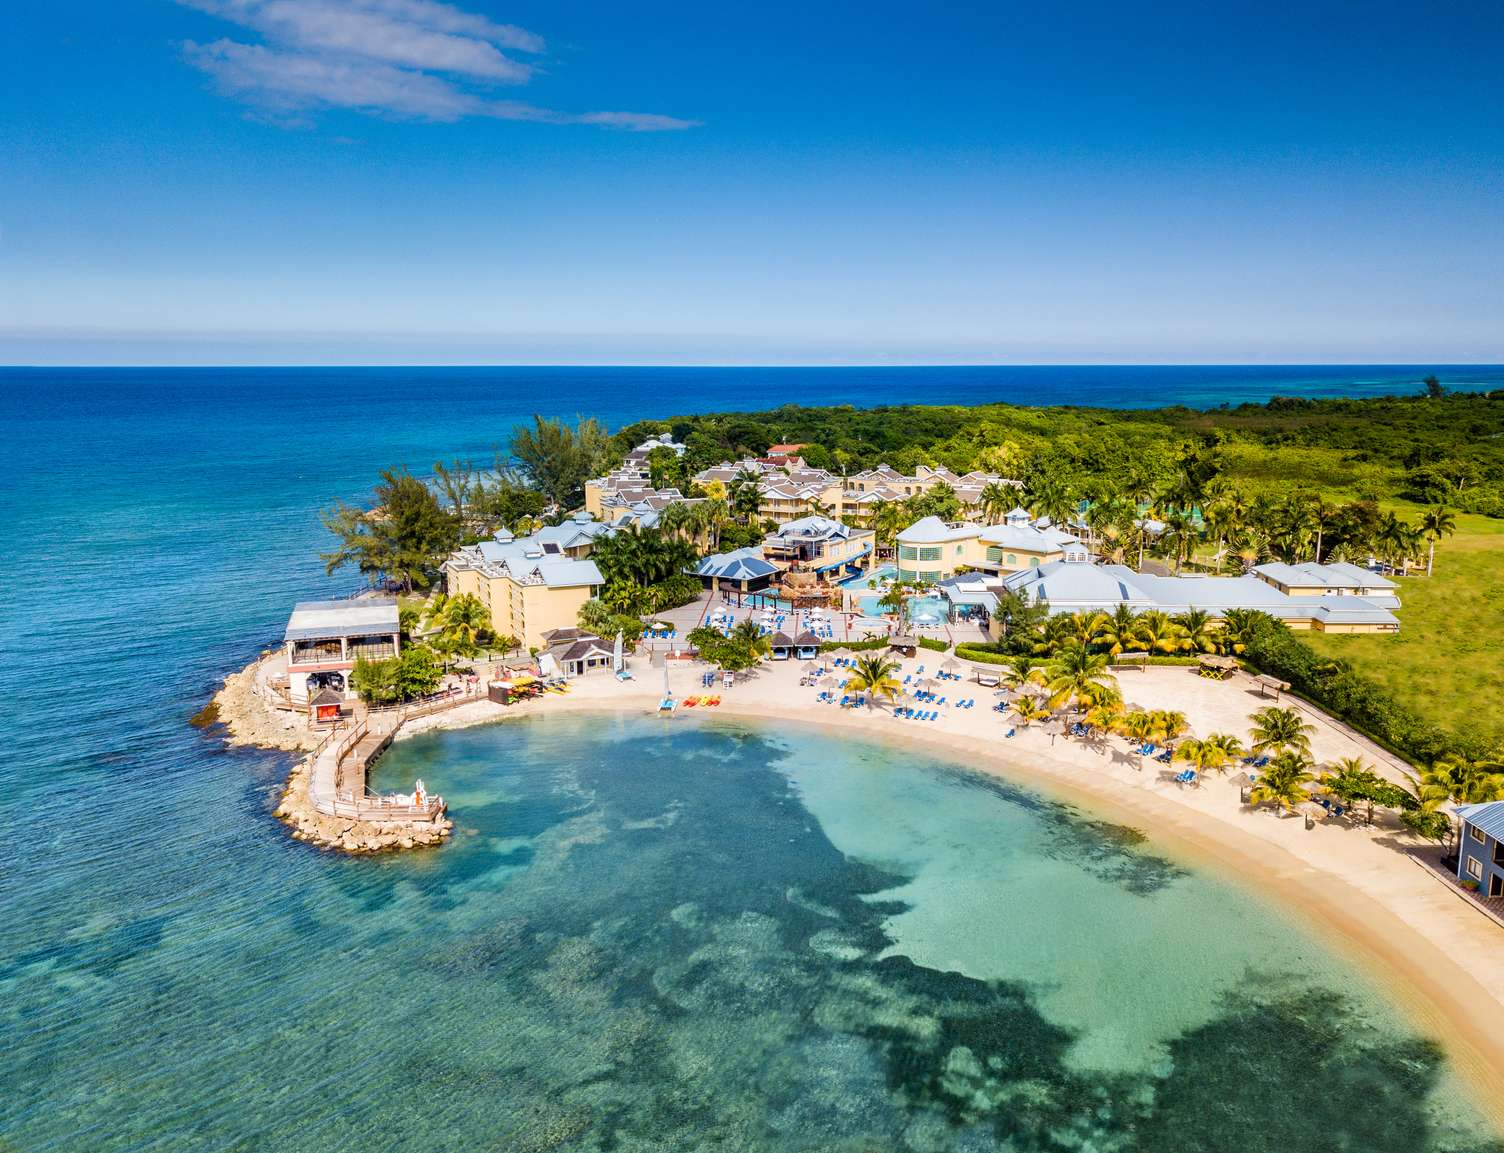 Image of Jewel Paradise Cove Resort & Spa, Saint Ann, Jamaica